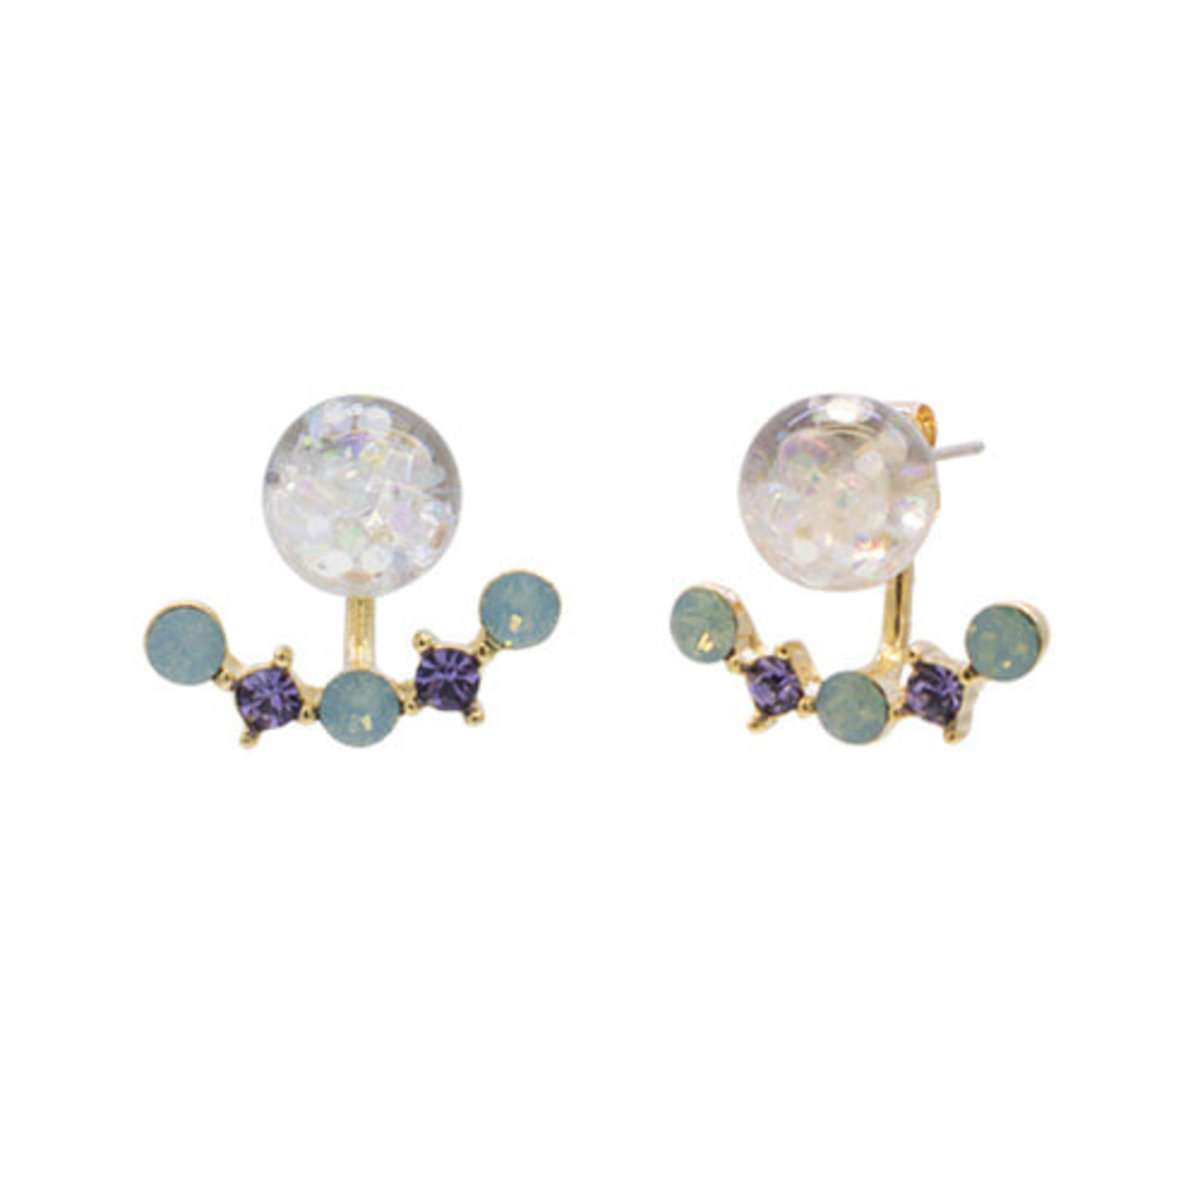 Luvly 2way Snowball Eearrings